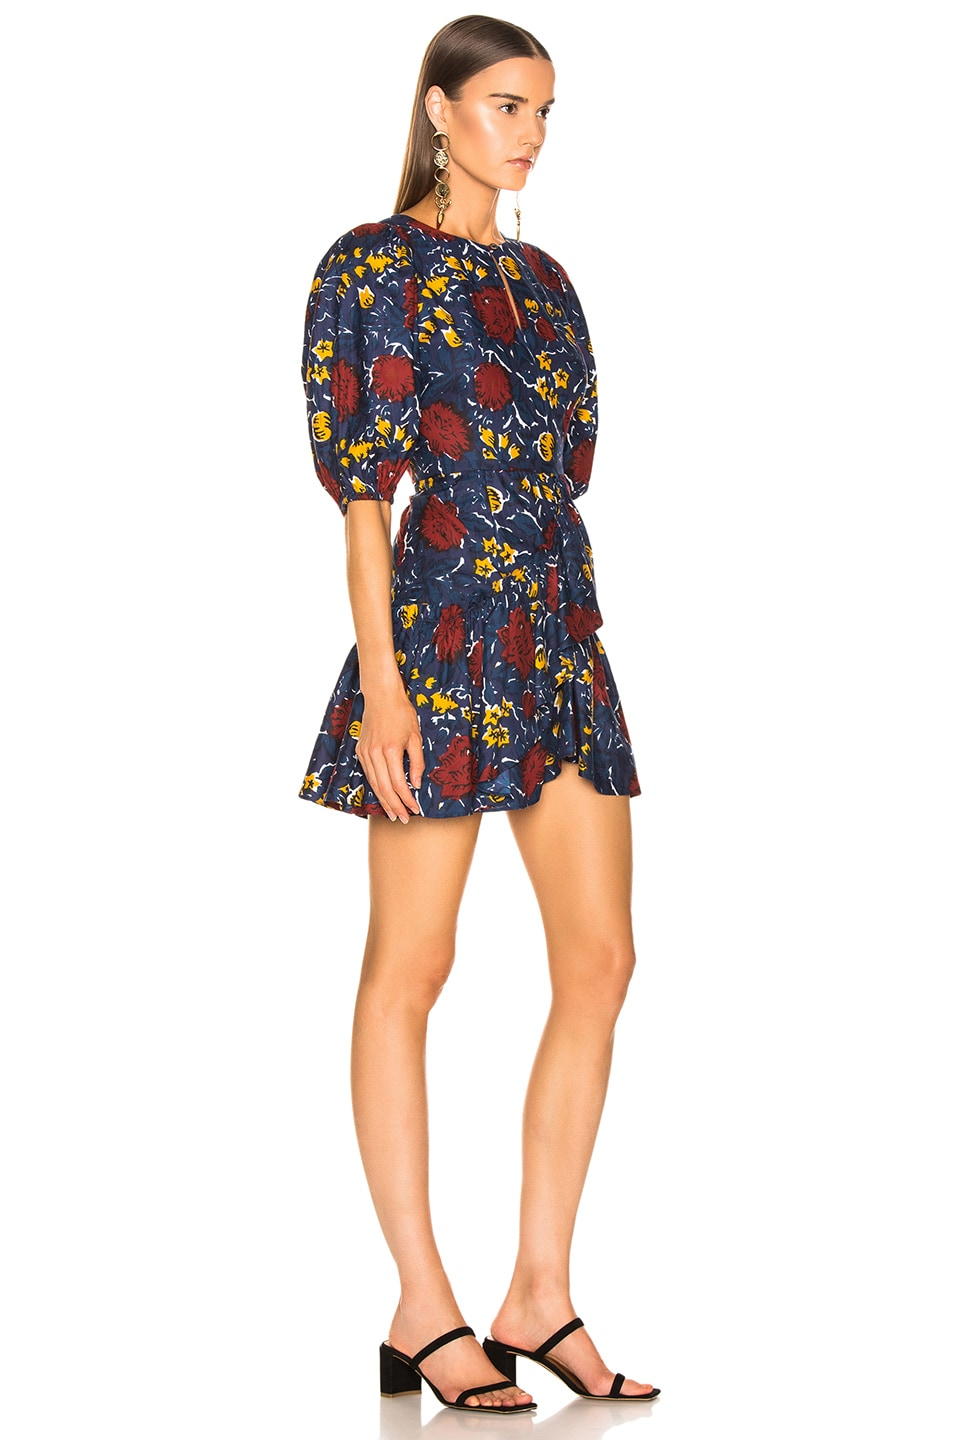 Image 2 of Sea Willow Ruffle Dress in Navy Multi